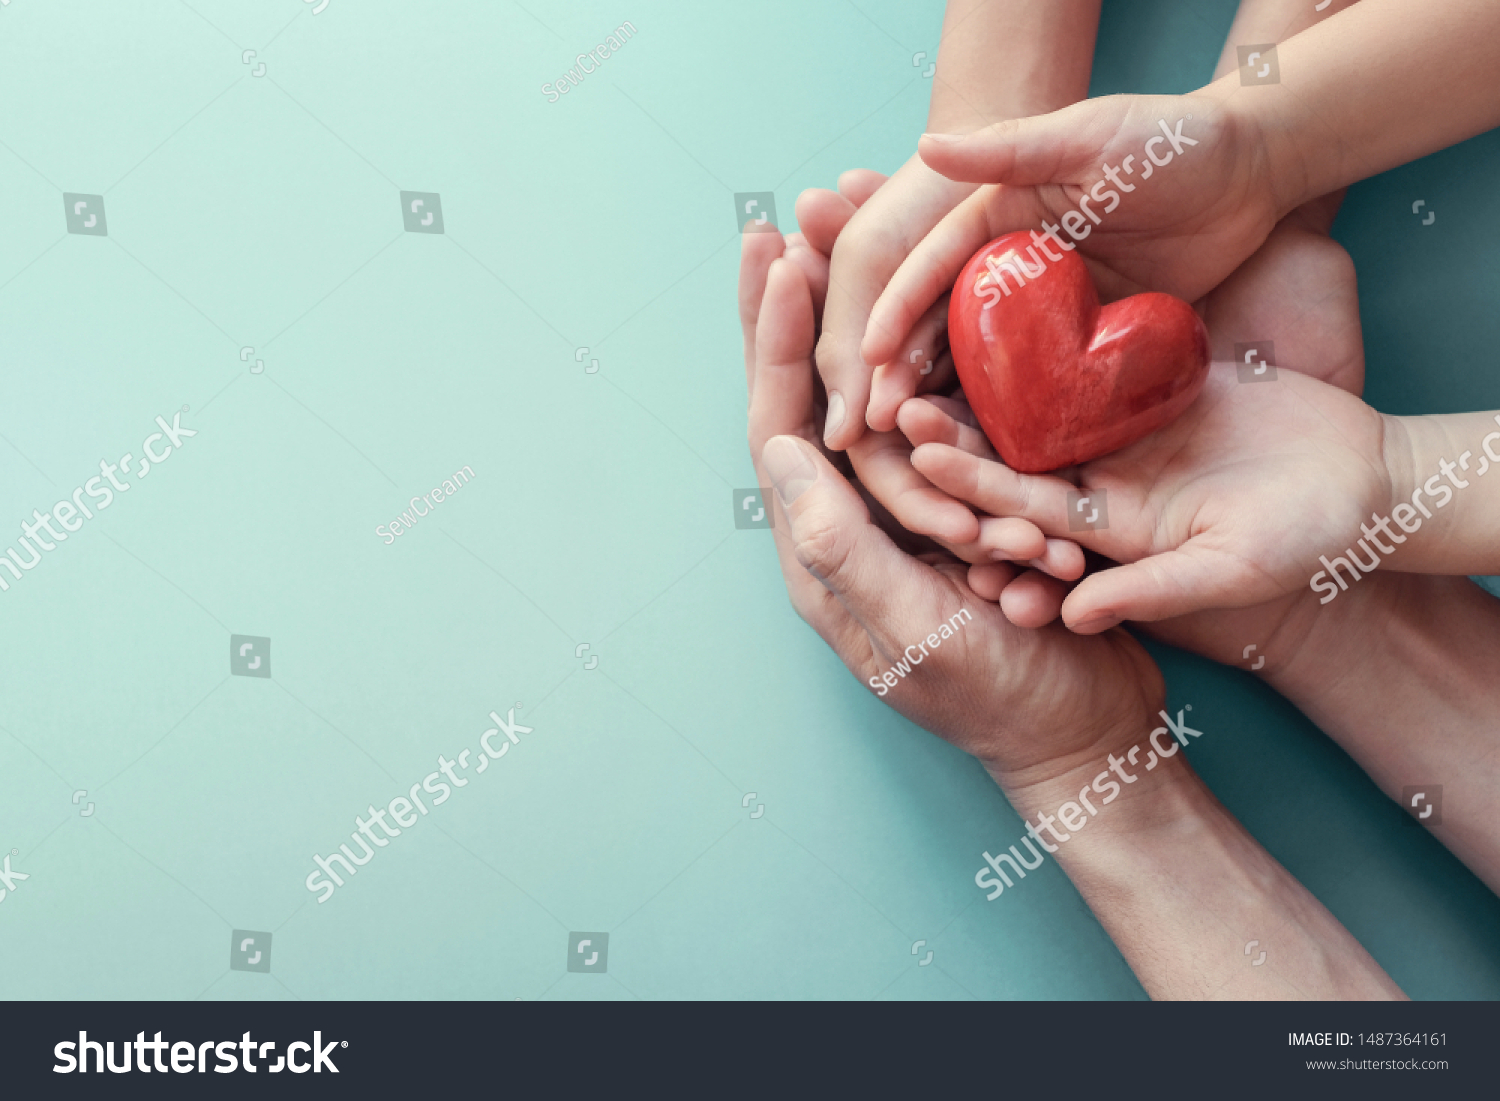 hands holding red heart, heart health, donation, happy volunteer charity, CSR social responsibility,world heart day, world health day,world mental health day,foster home, wellbeing, be kind concept #1487364161